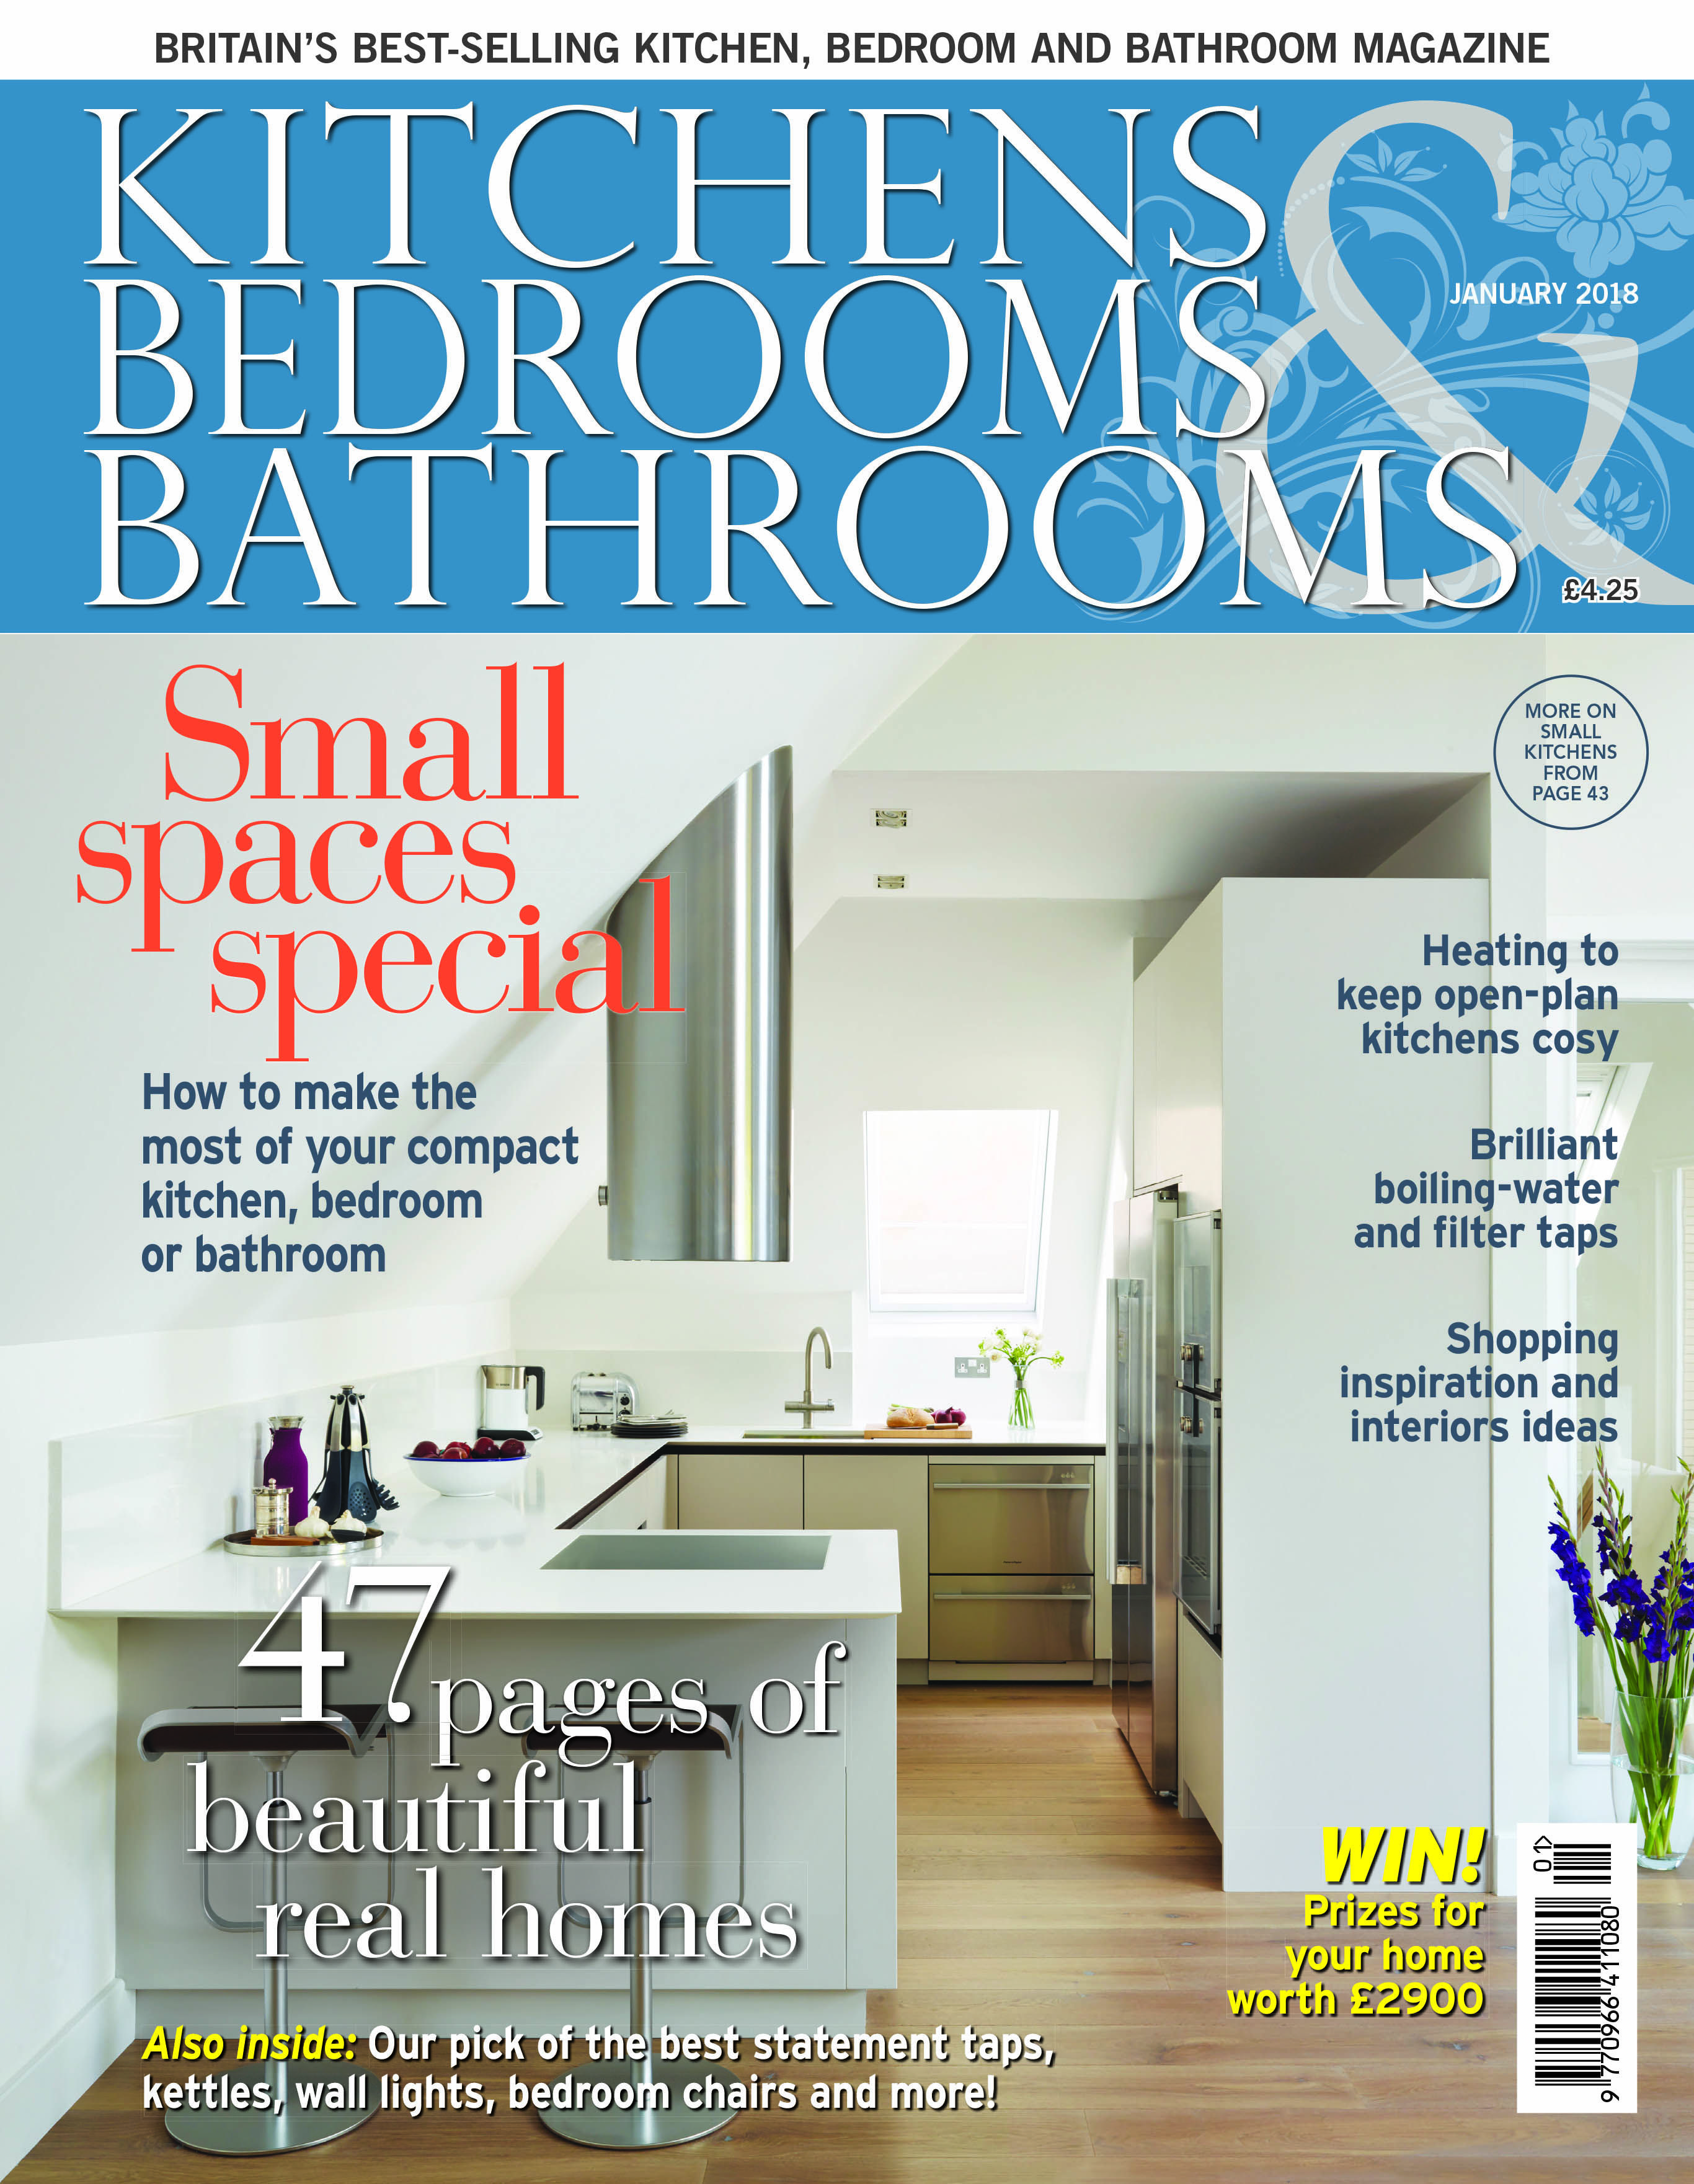 Kitchens Bedrooms & Bathrooms magazine - January 2018 | KBB covers ...